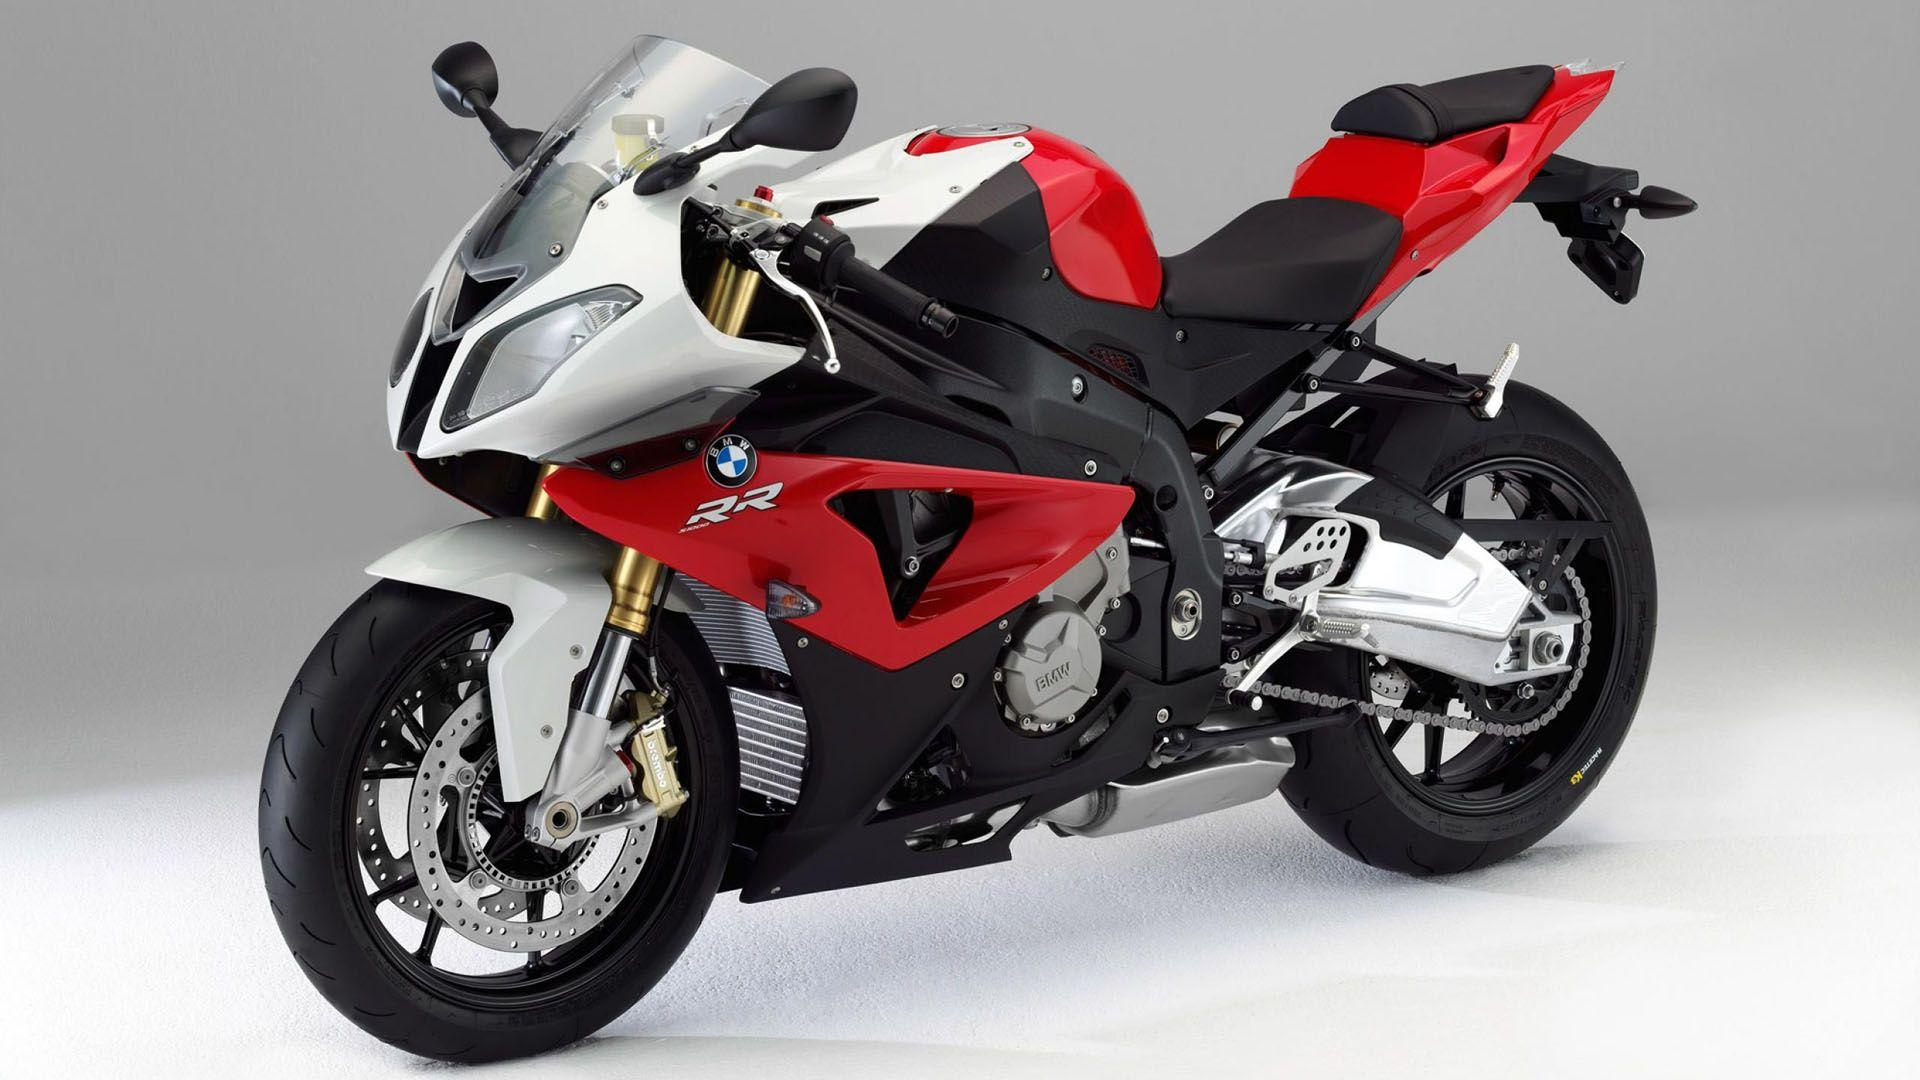 bmw motorcycle hd photo  BMW Bikes Wallpapers - Wallpaper Cave